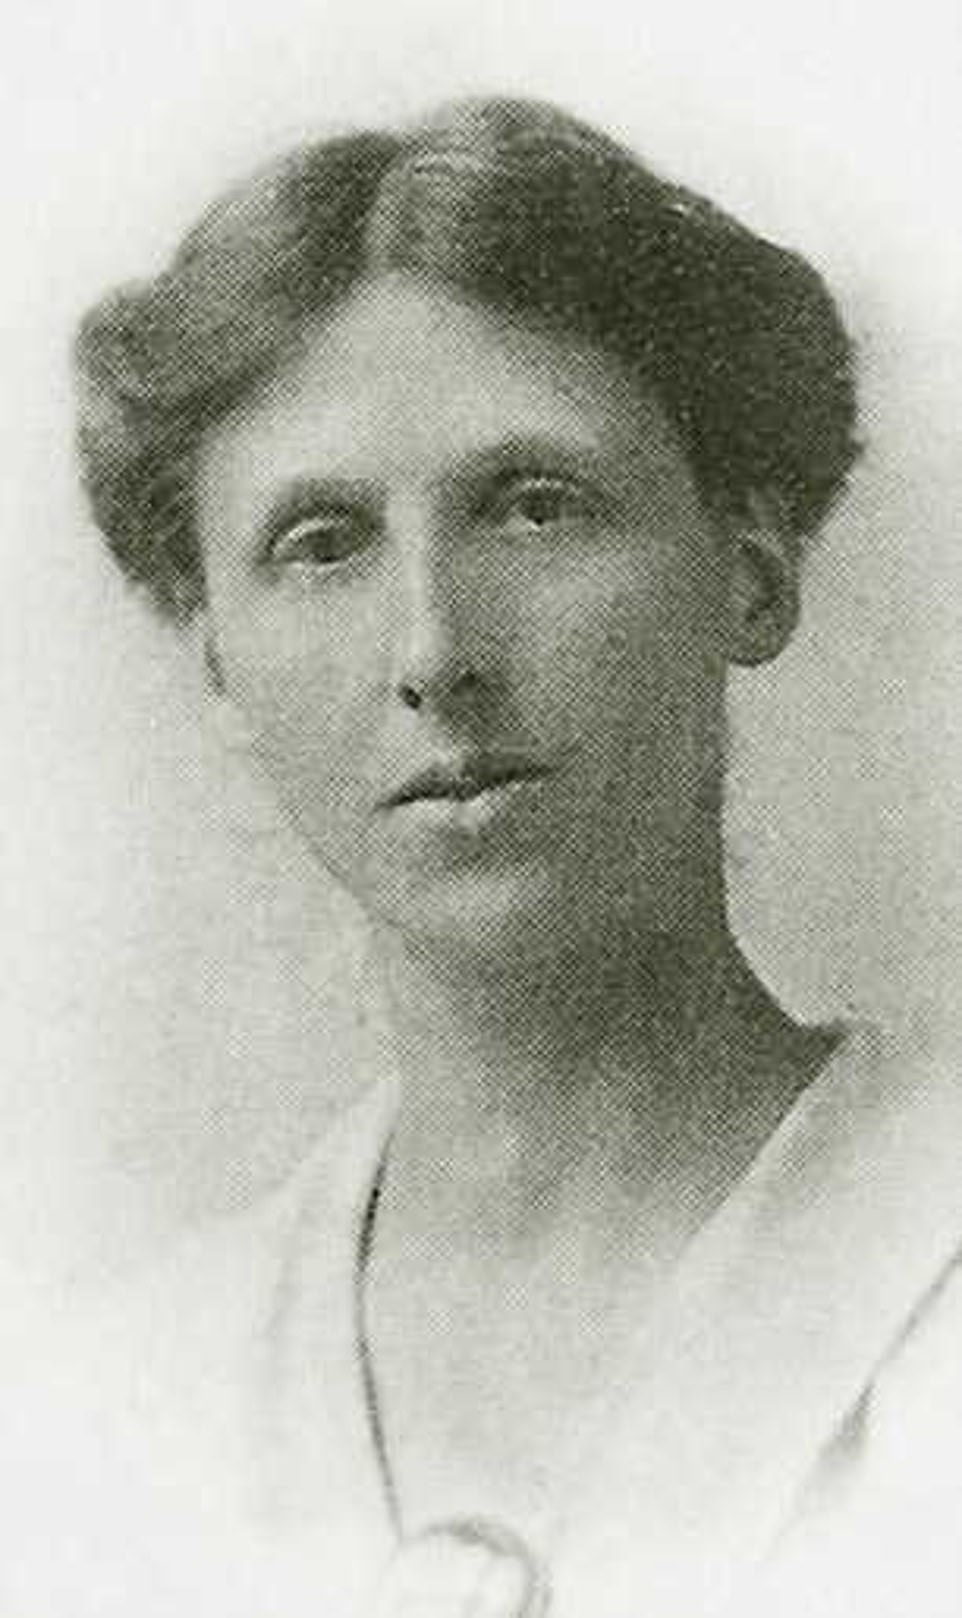 Olive Middleton (née Lupton), the Great Great Grandmother of Kate Middleton, on her father's side, volunteered as a Red Cross nurse during the First World War